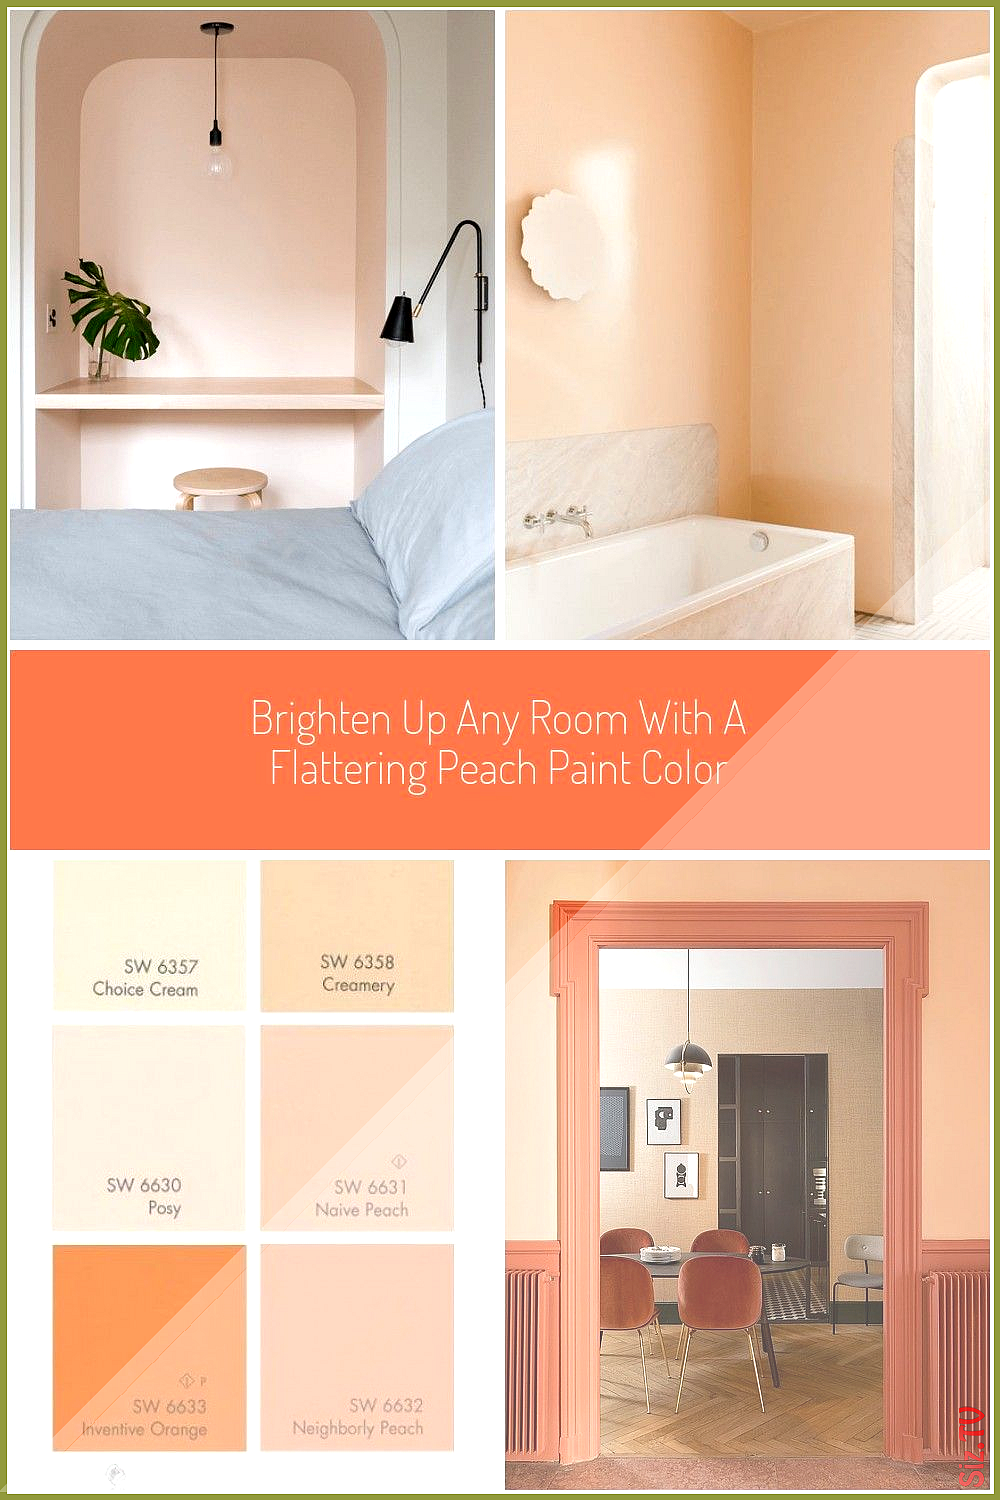 Brighten Up Any Room With A Flattering Peach Paint Color Wow 1 Day Painting Peach Paint Brighten Up Any Room With In 2020 Peach Paint Peach Paint Colors Paint Colors